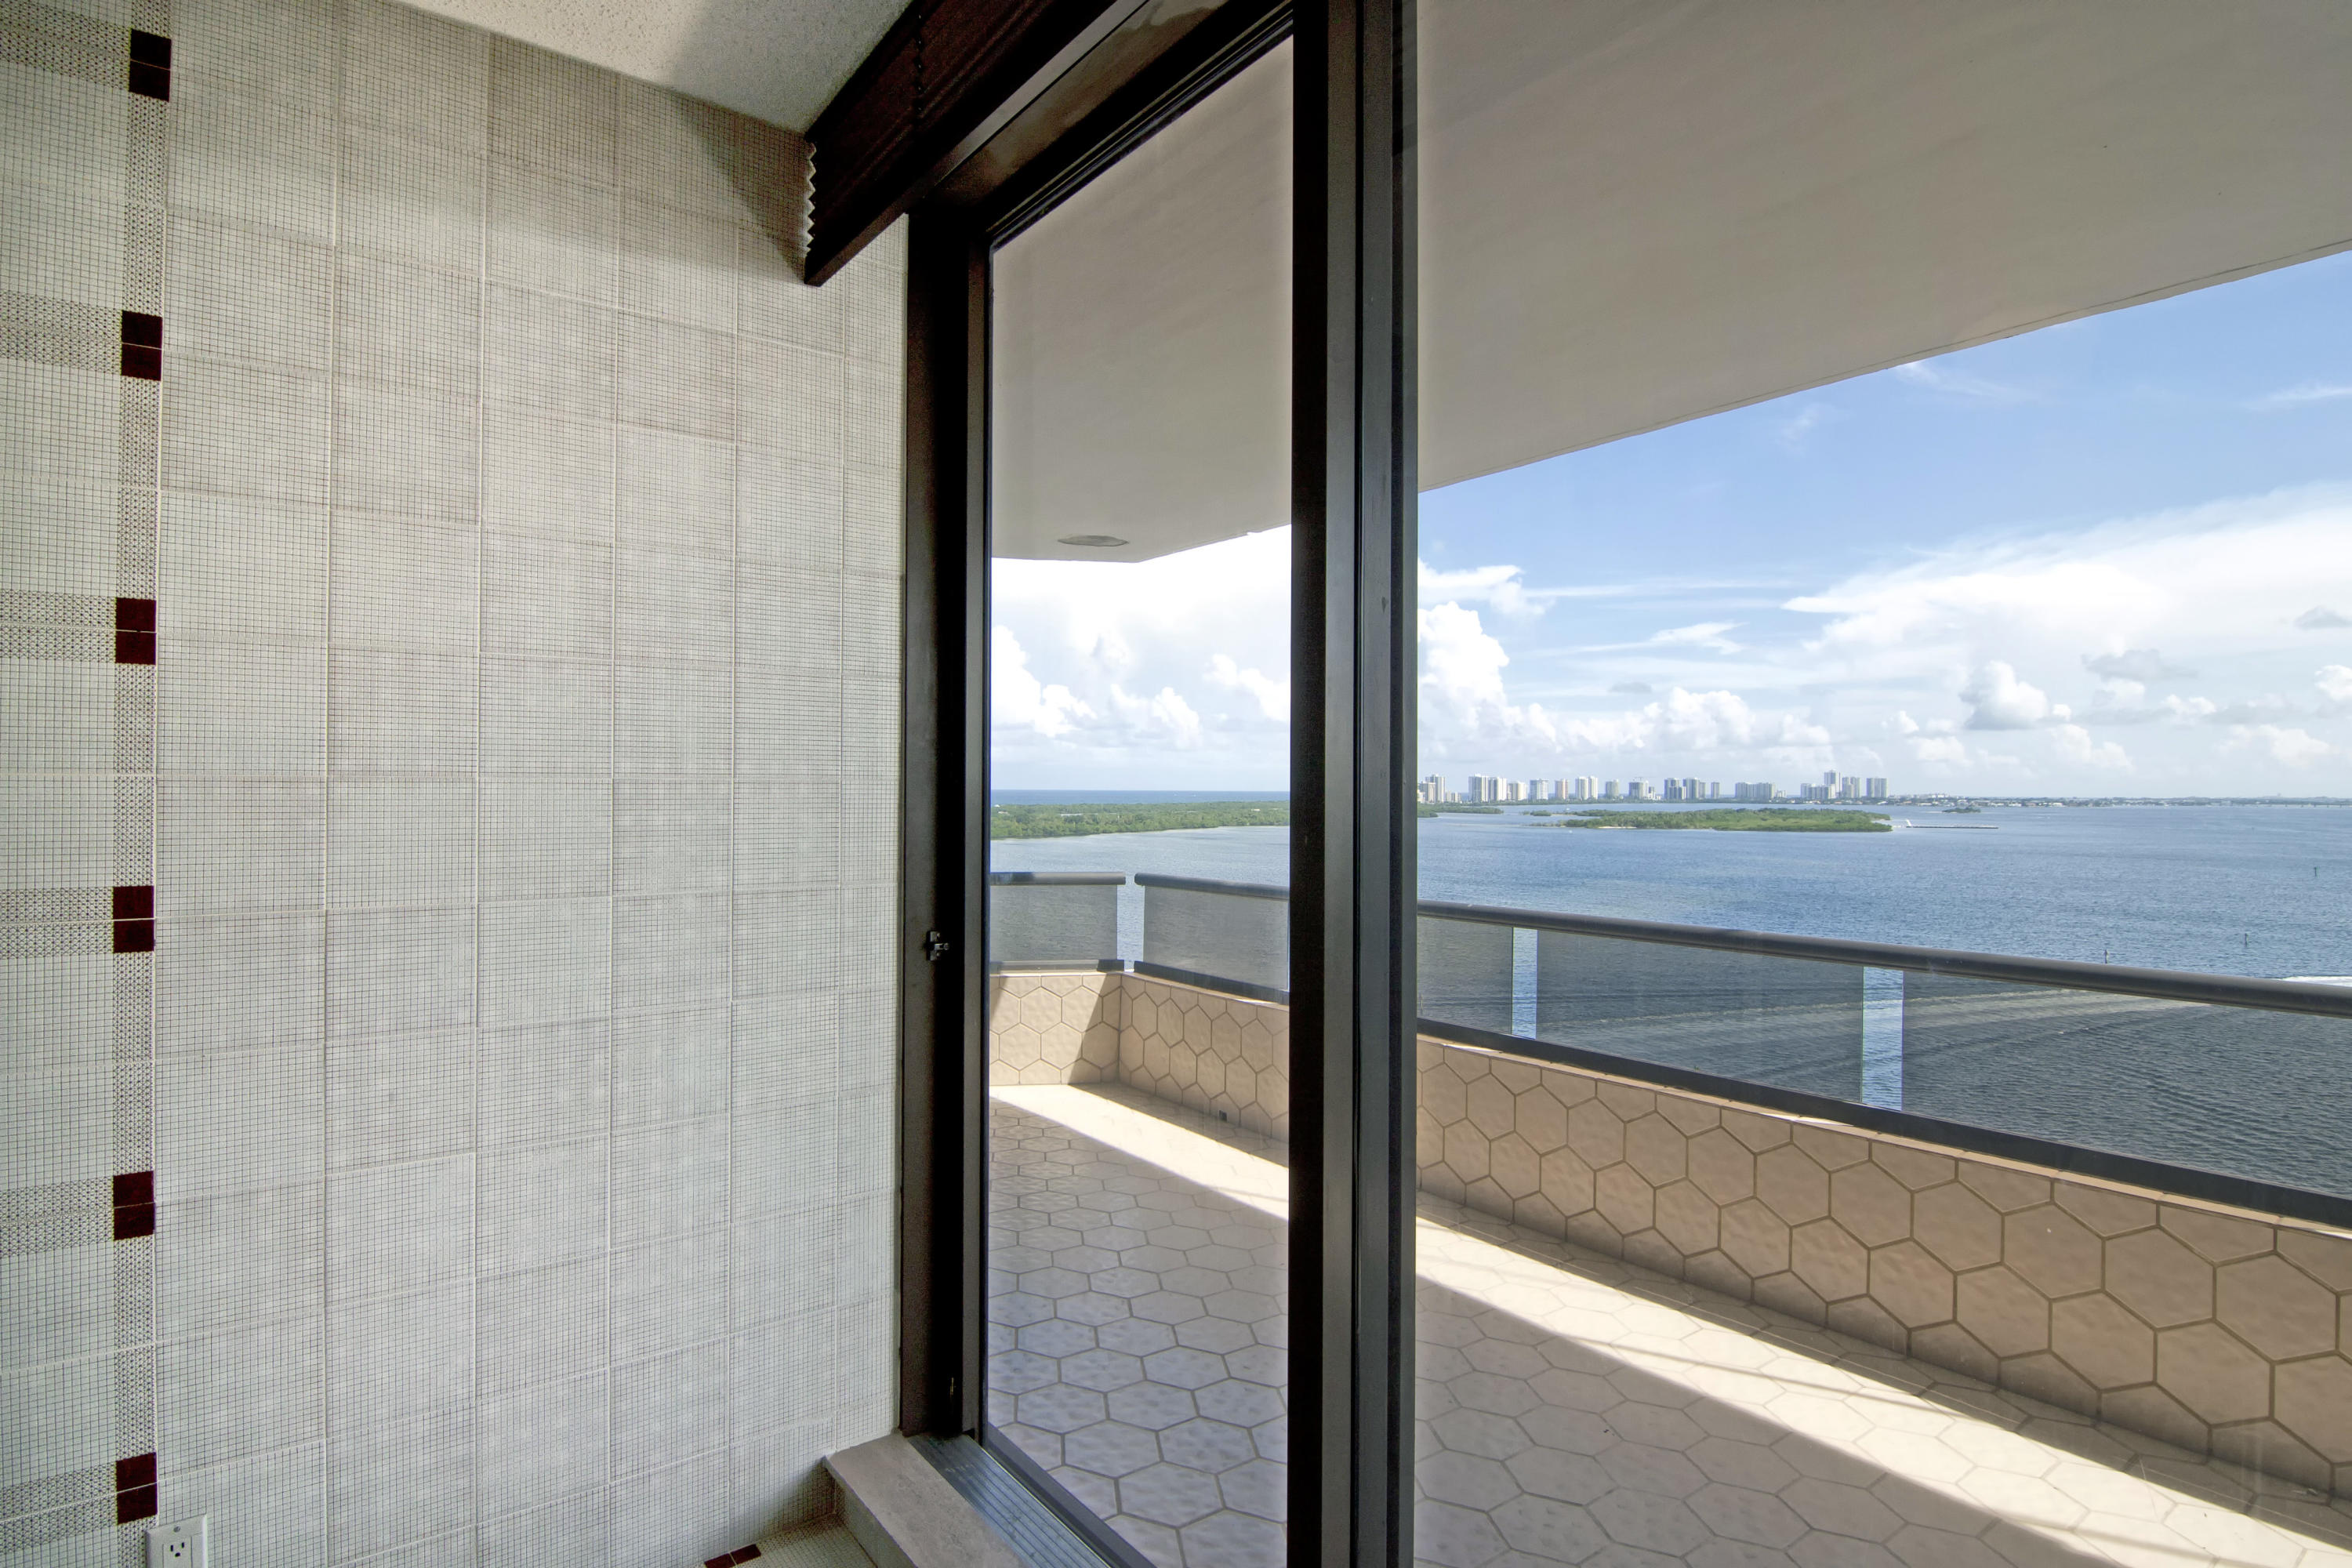 LAKE POINT TOWER PROPERTY